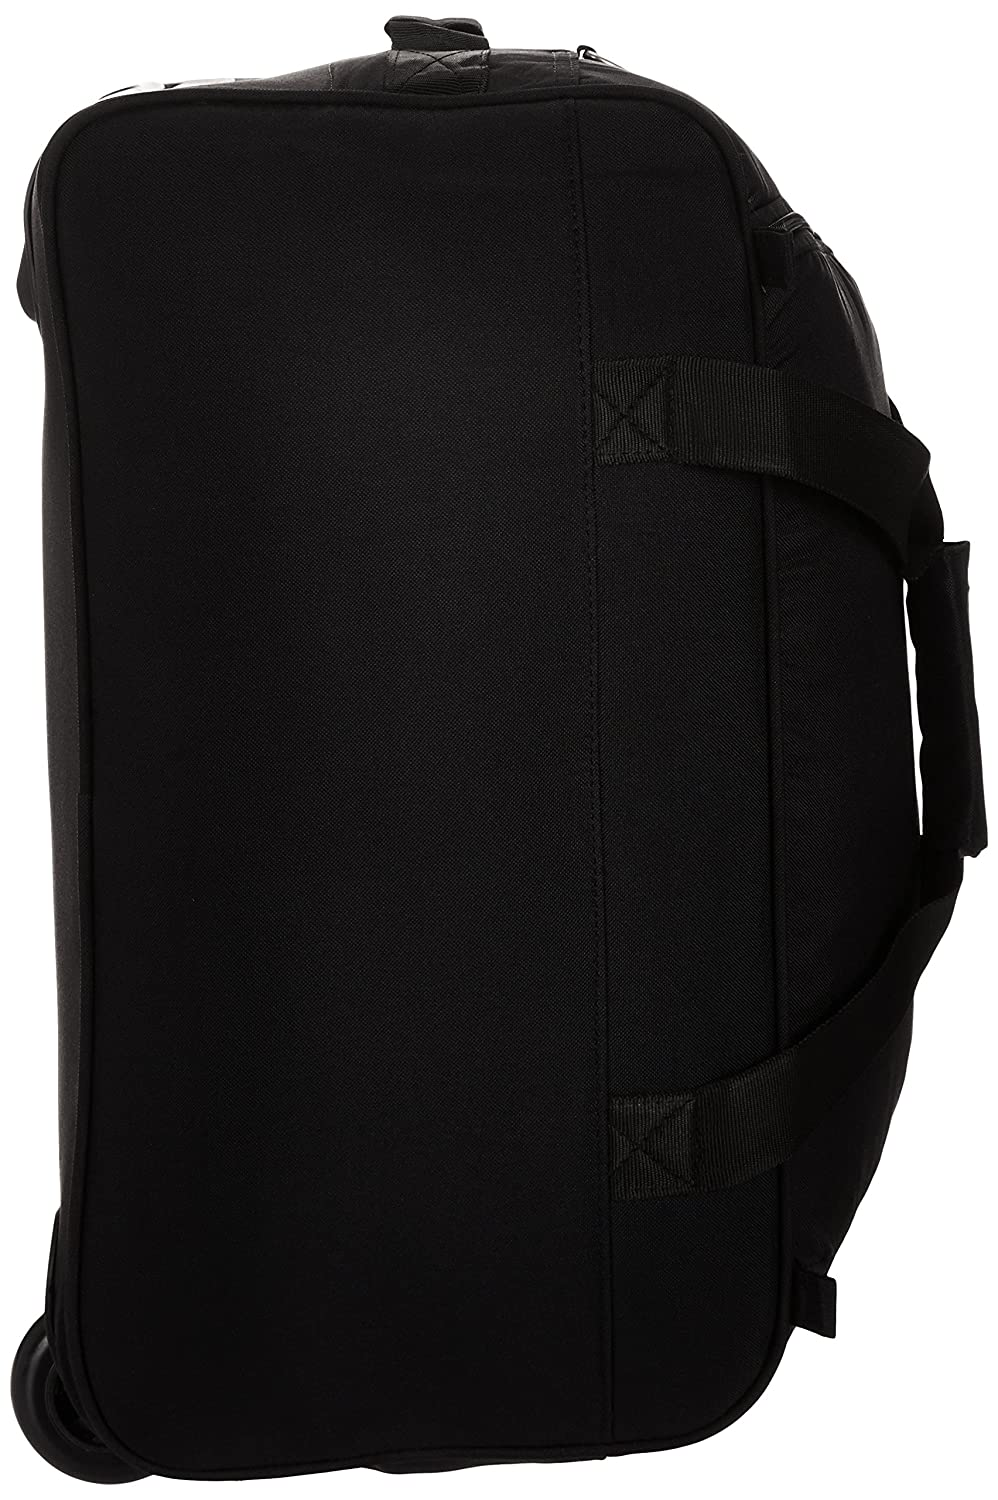 f3b53562b030 Skybags Cardiff Polyester 52 cms Black Travel Duffle (DFTCAR52BLK):  Amazon.in: Bags, Wallets & Luggage